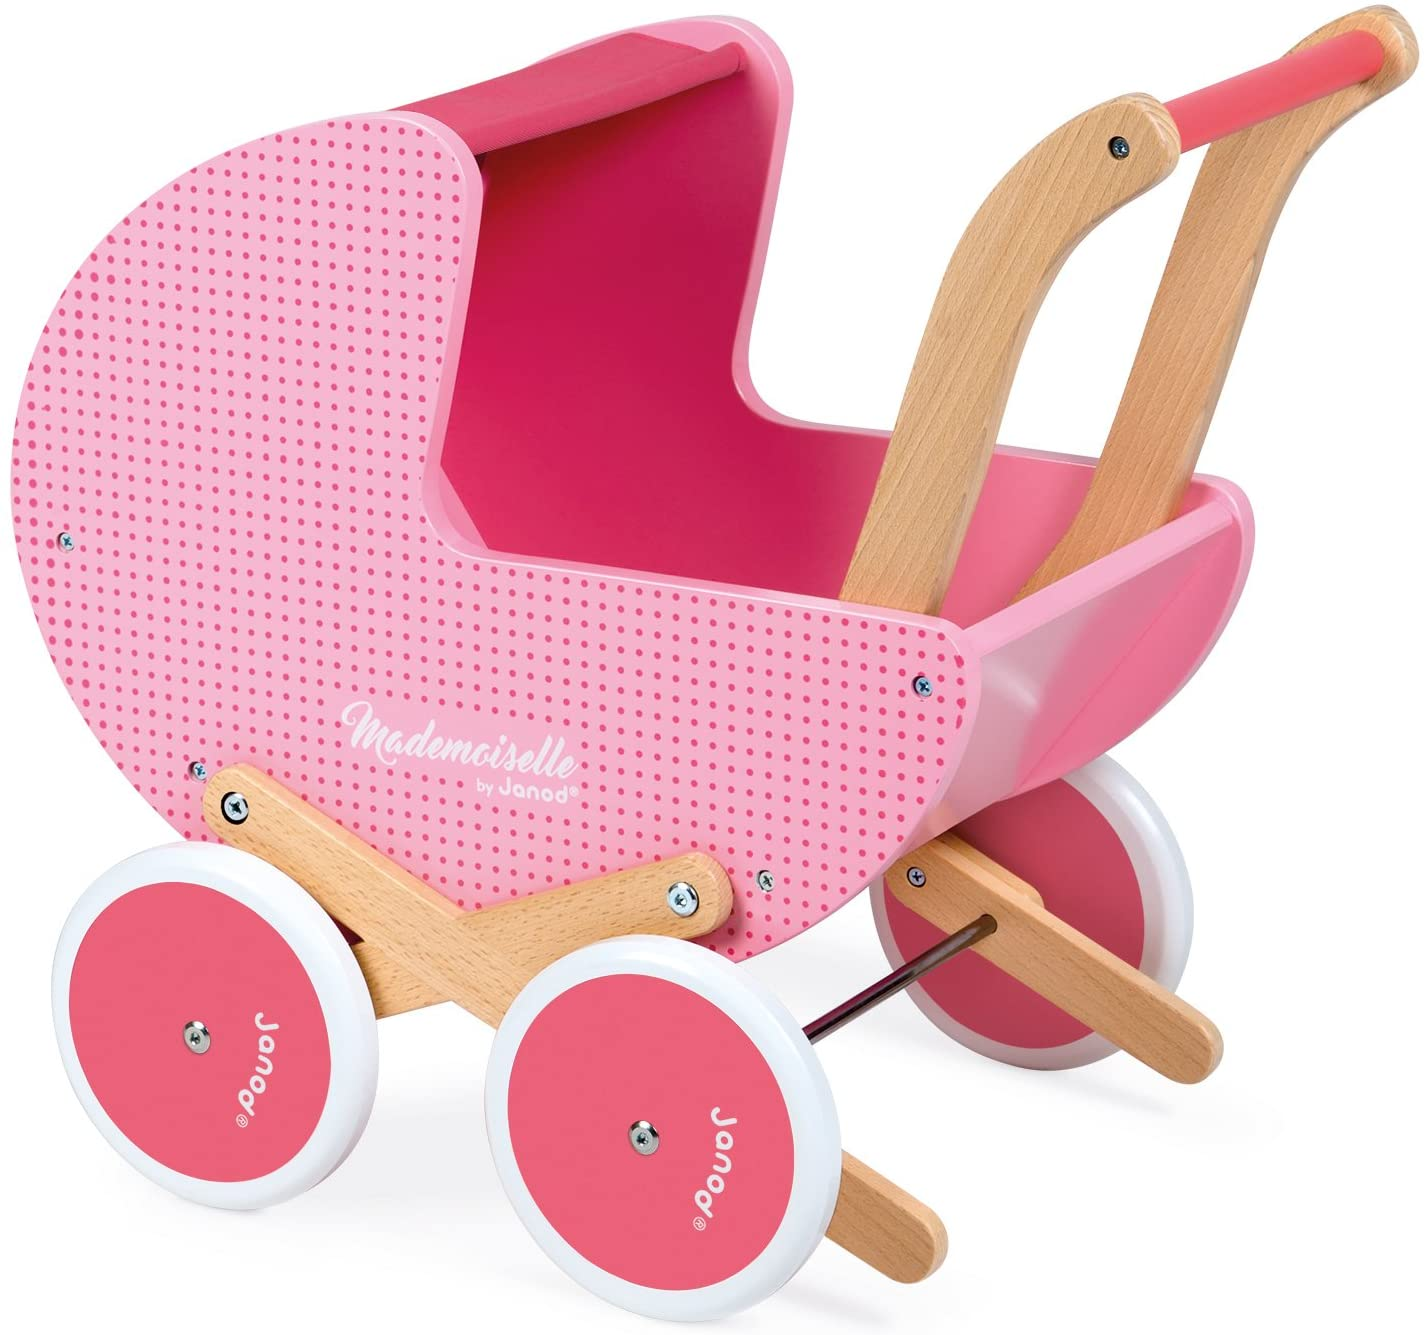 Janod Mademoiselle Classic Wooden Doll Pram – Stroll Everywhere with Dolls Up to 16 inches – Develops Role Play and Imaginative Skills – Ages 3+ years